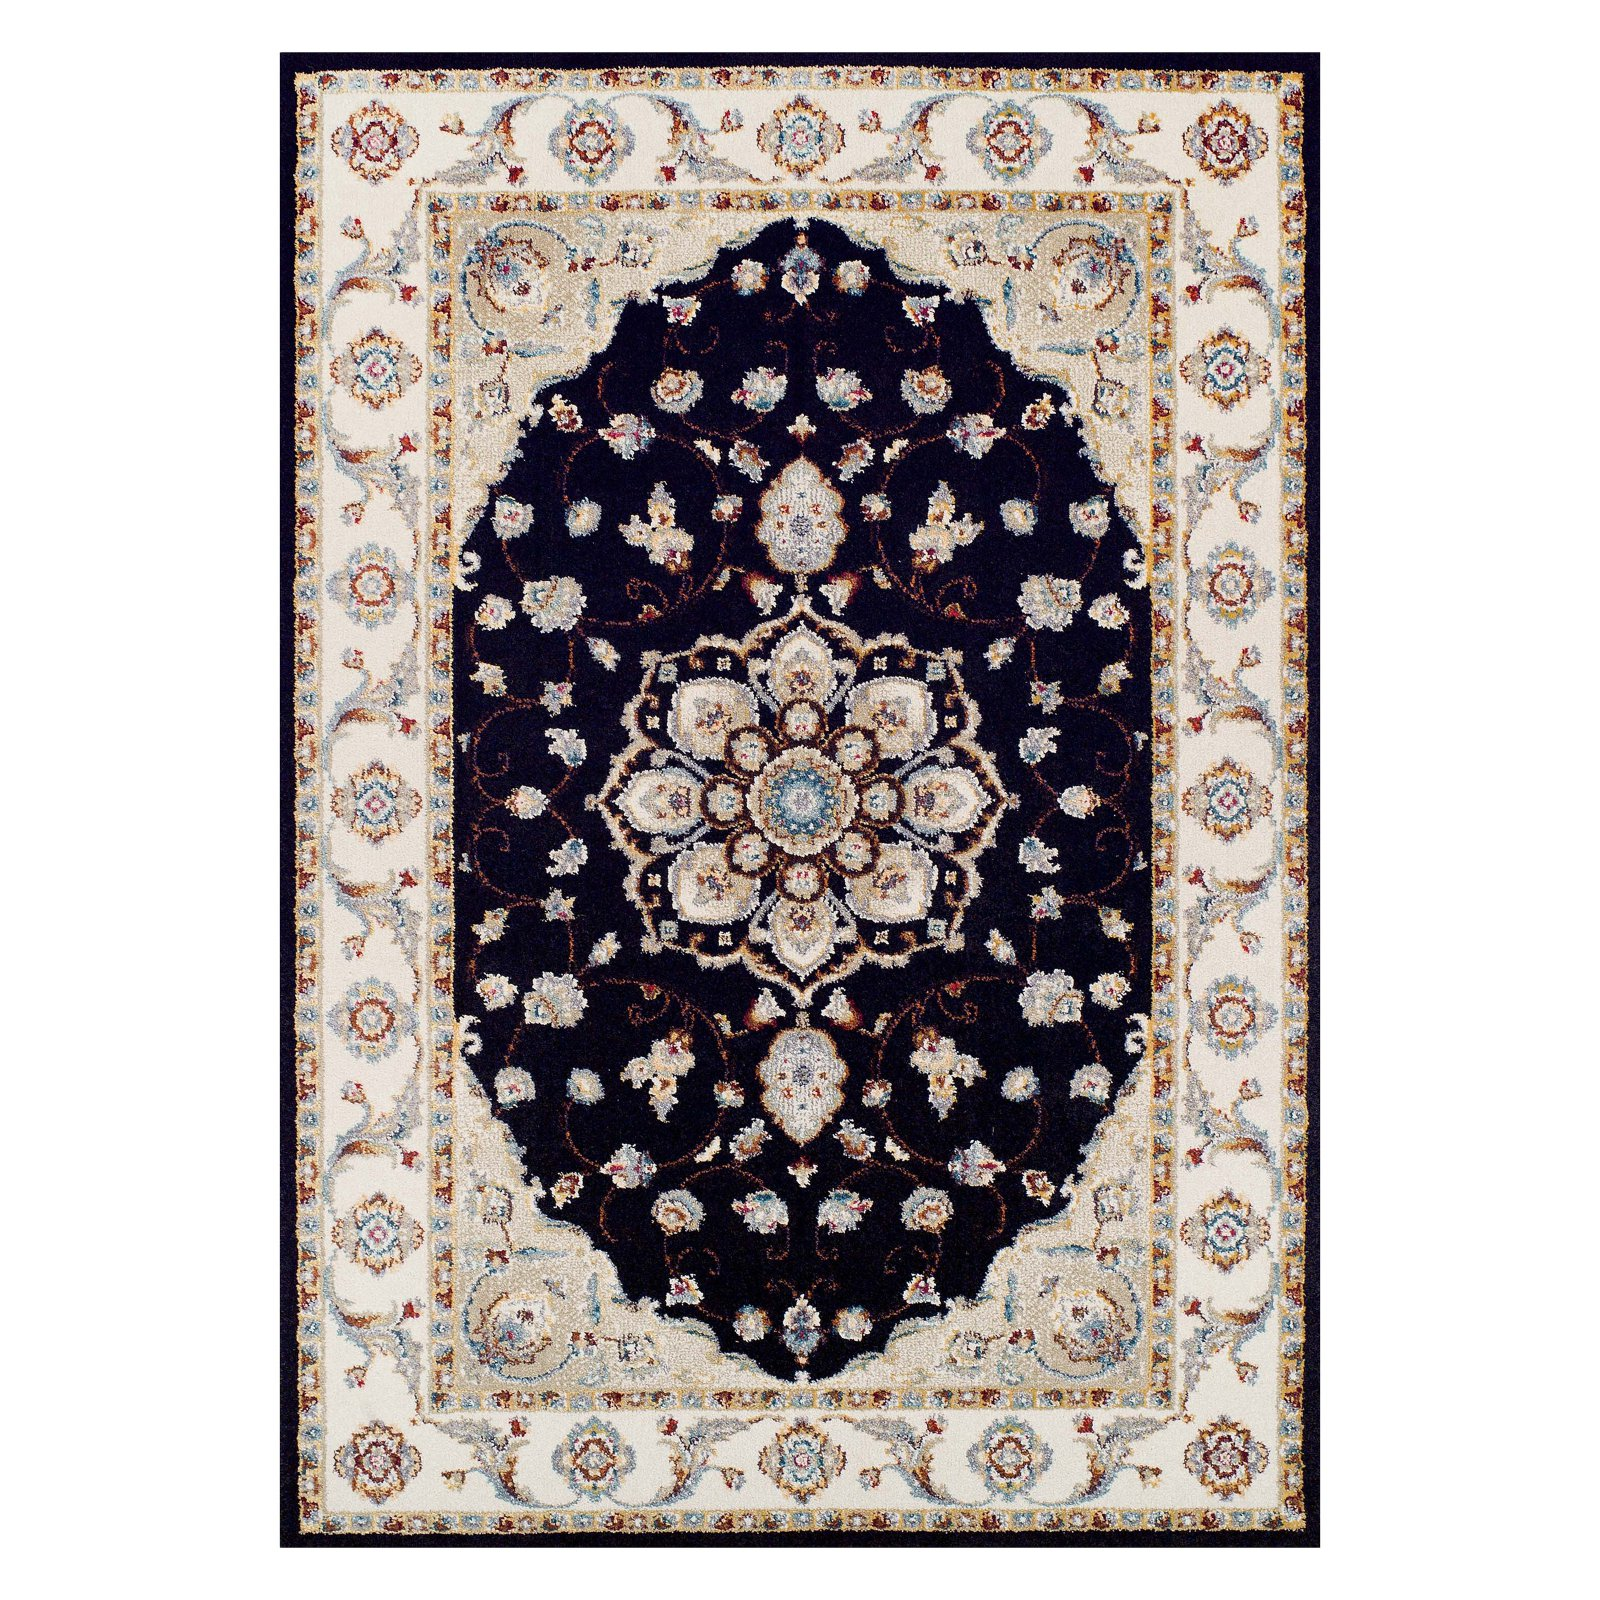 Couristan Vintage Floral Malayer/Ebony-Sand Rug, Multiple Sizes